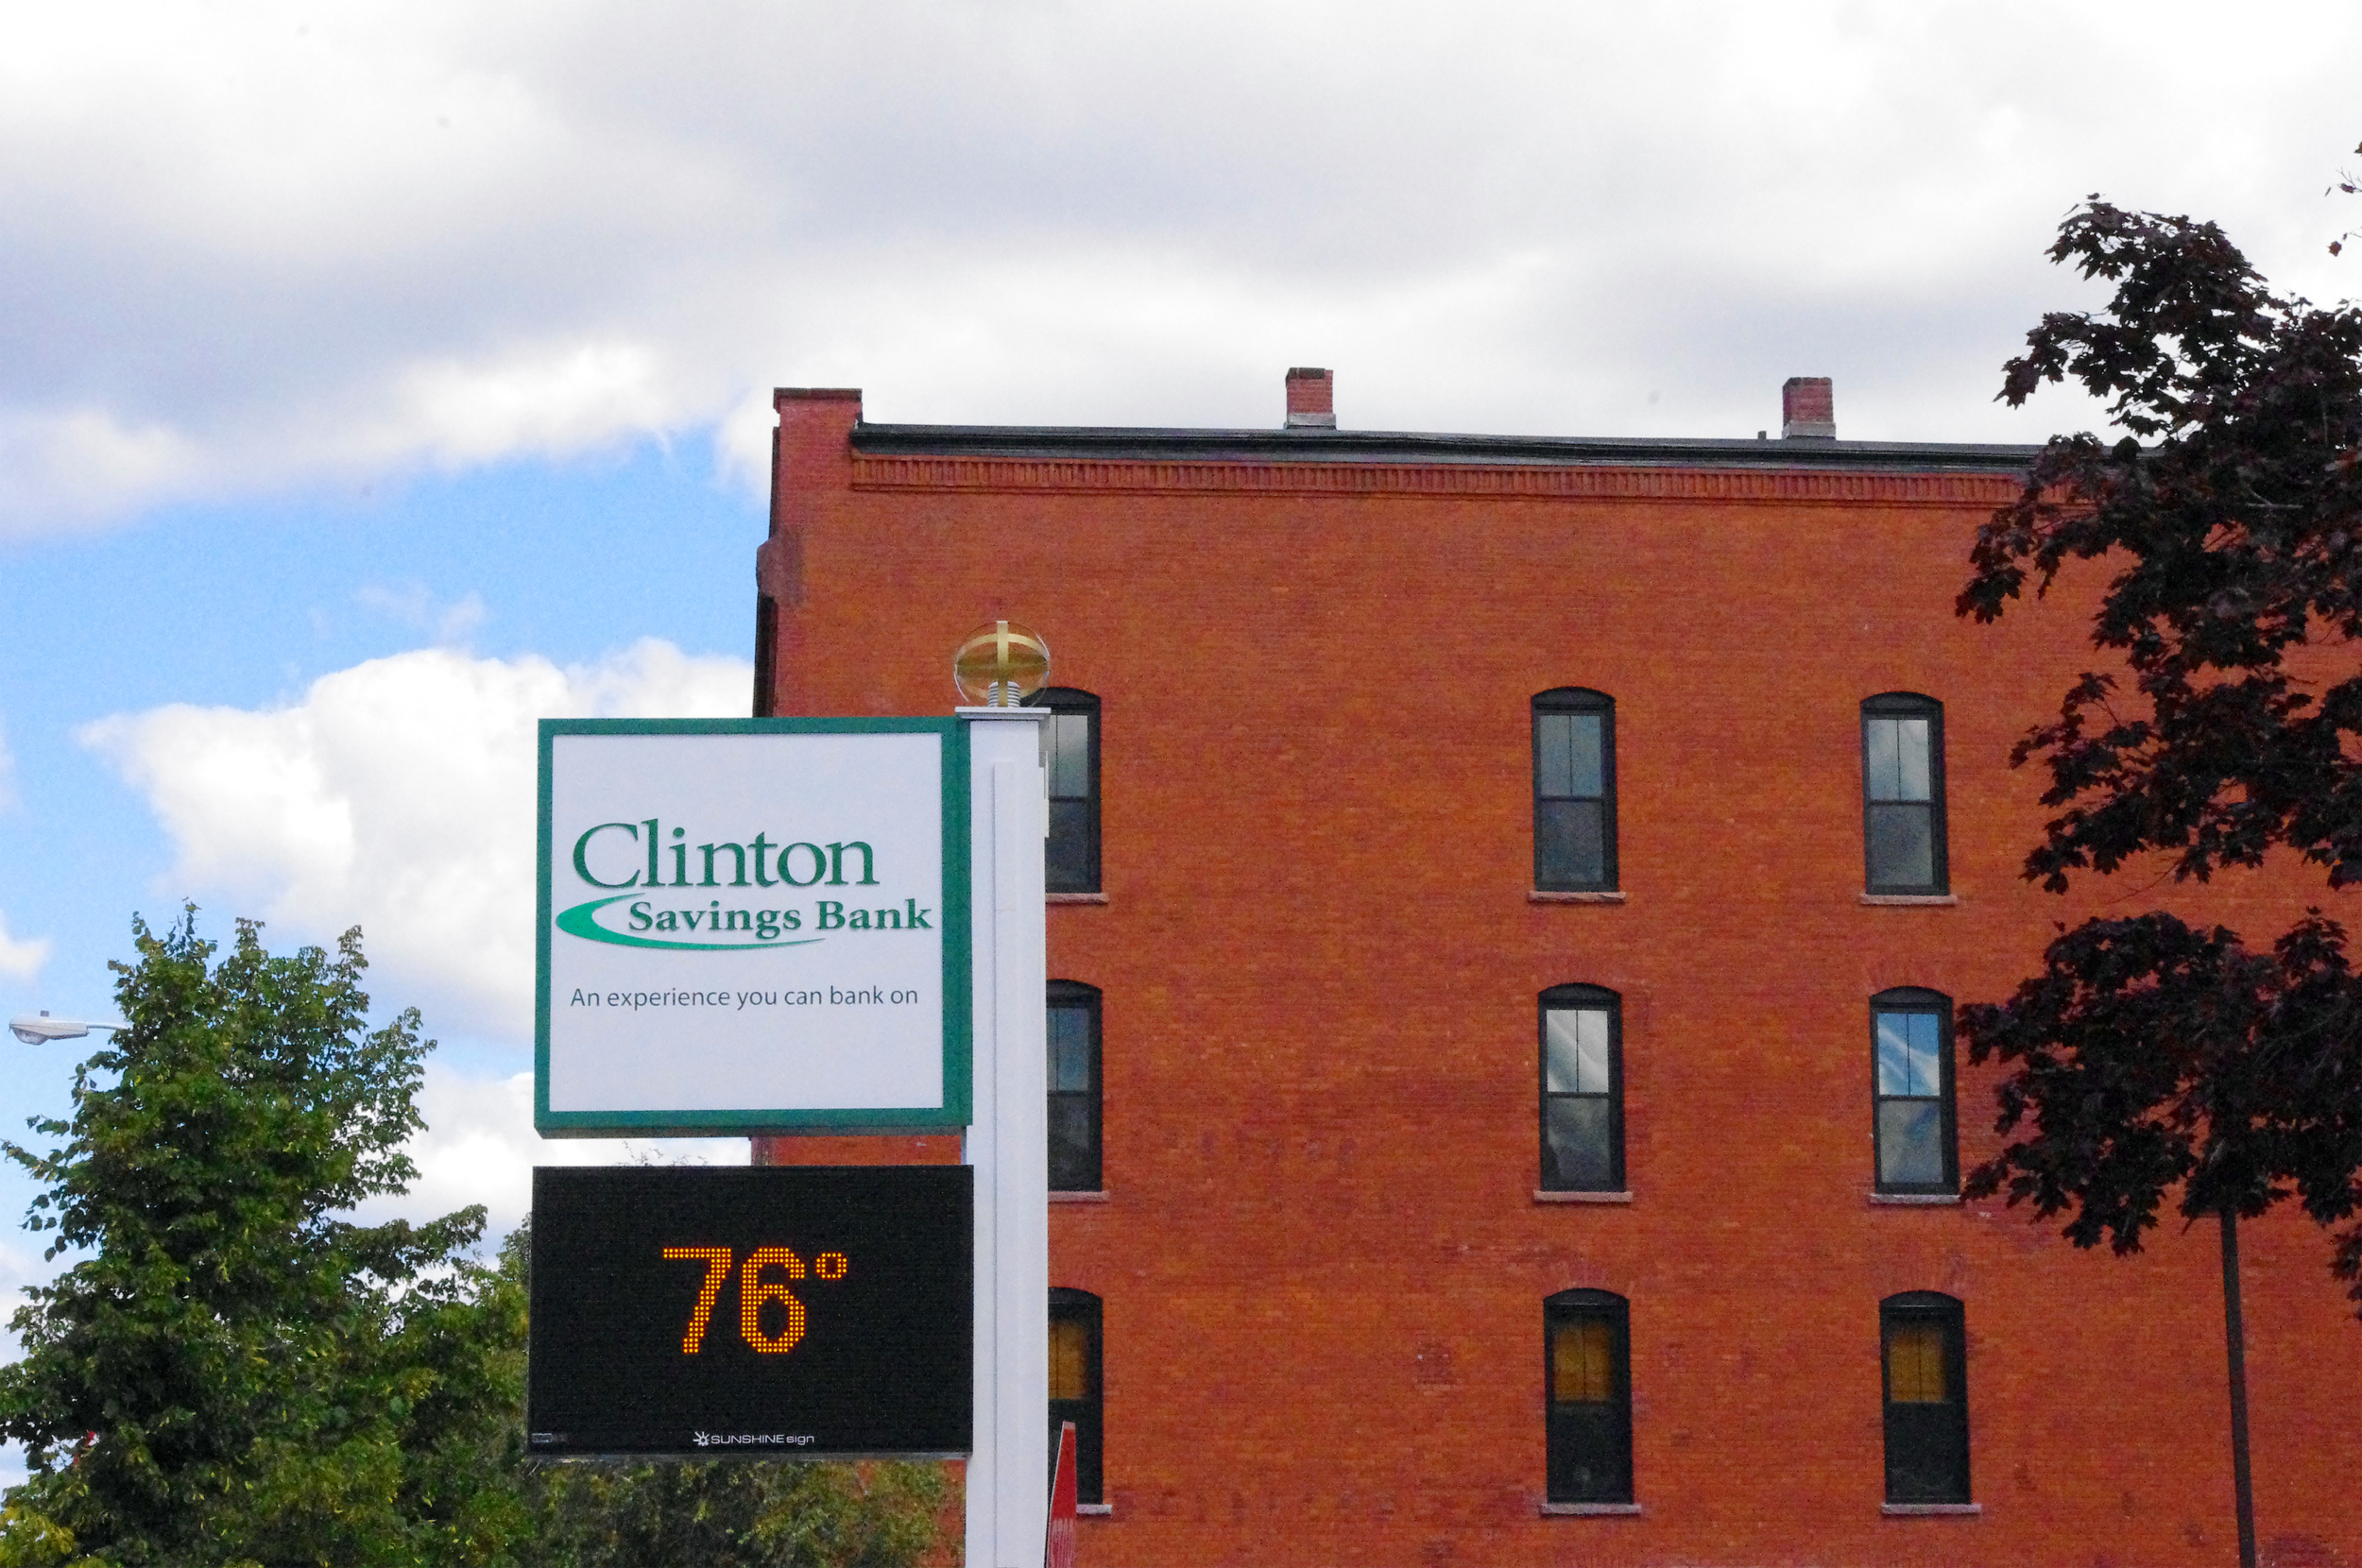 CLINTON SAVINGS BANK_1_WEBSITE.jpg